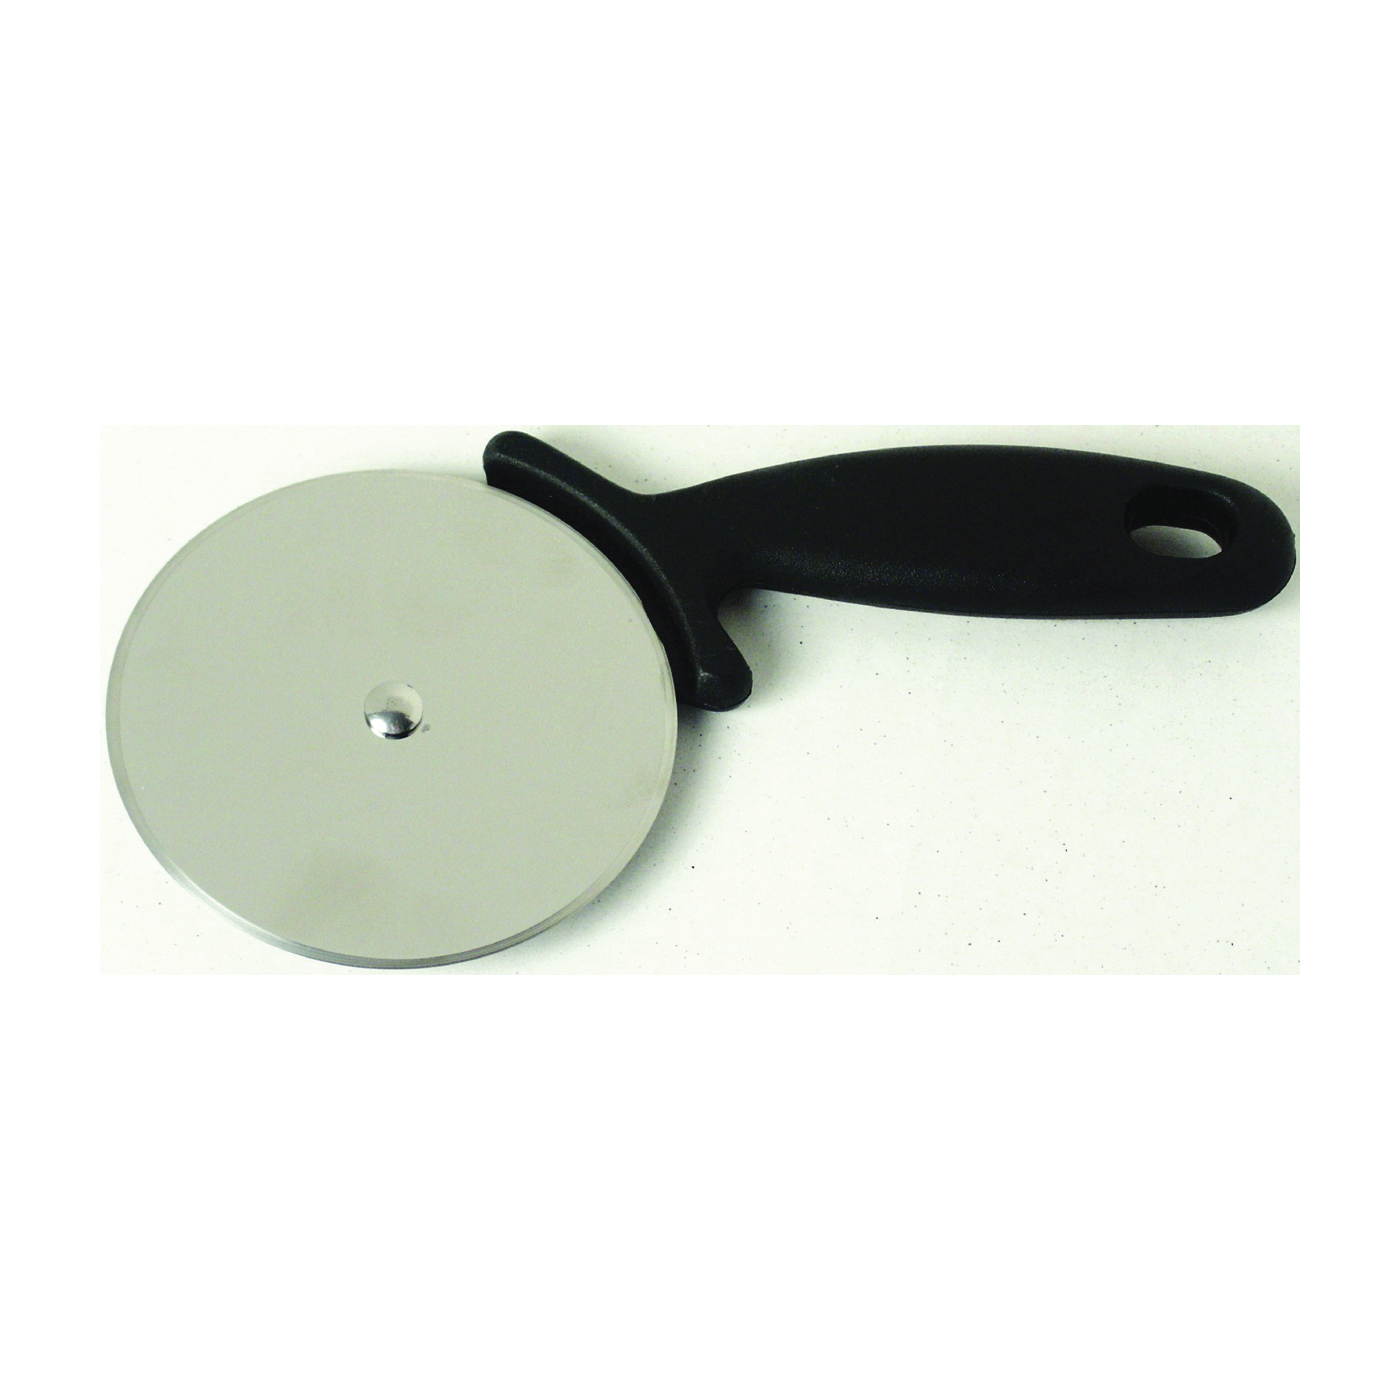 Picture of CHEF CRAFT 21370 Pizza Cutter, Stainless Steel Blade, Black Handle, Dishwasher Safe: Yes